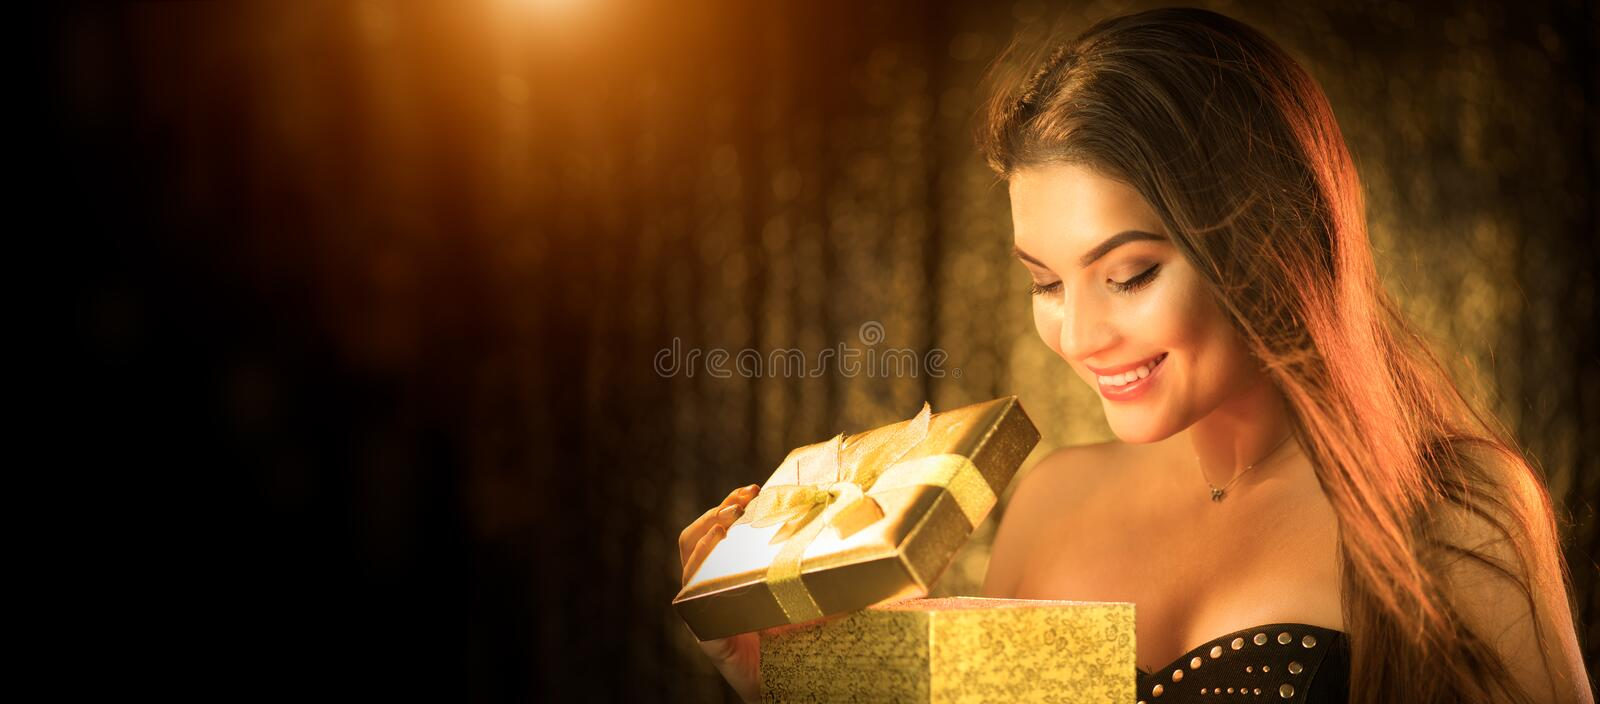 Surprised Christmas Winter Woman opening magic Christmas Gift box and smiling. Fairy tale. Beautiful New Year and Xmas scene royalty free stock image